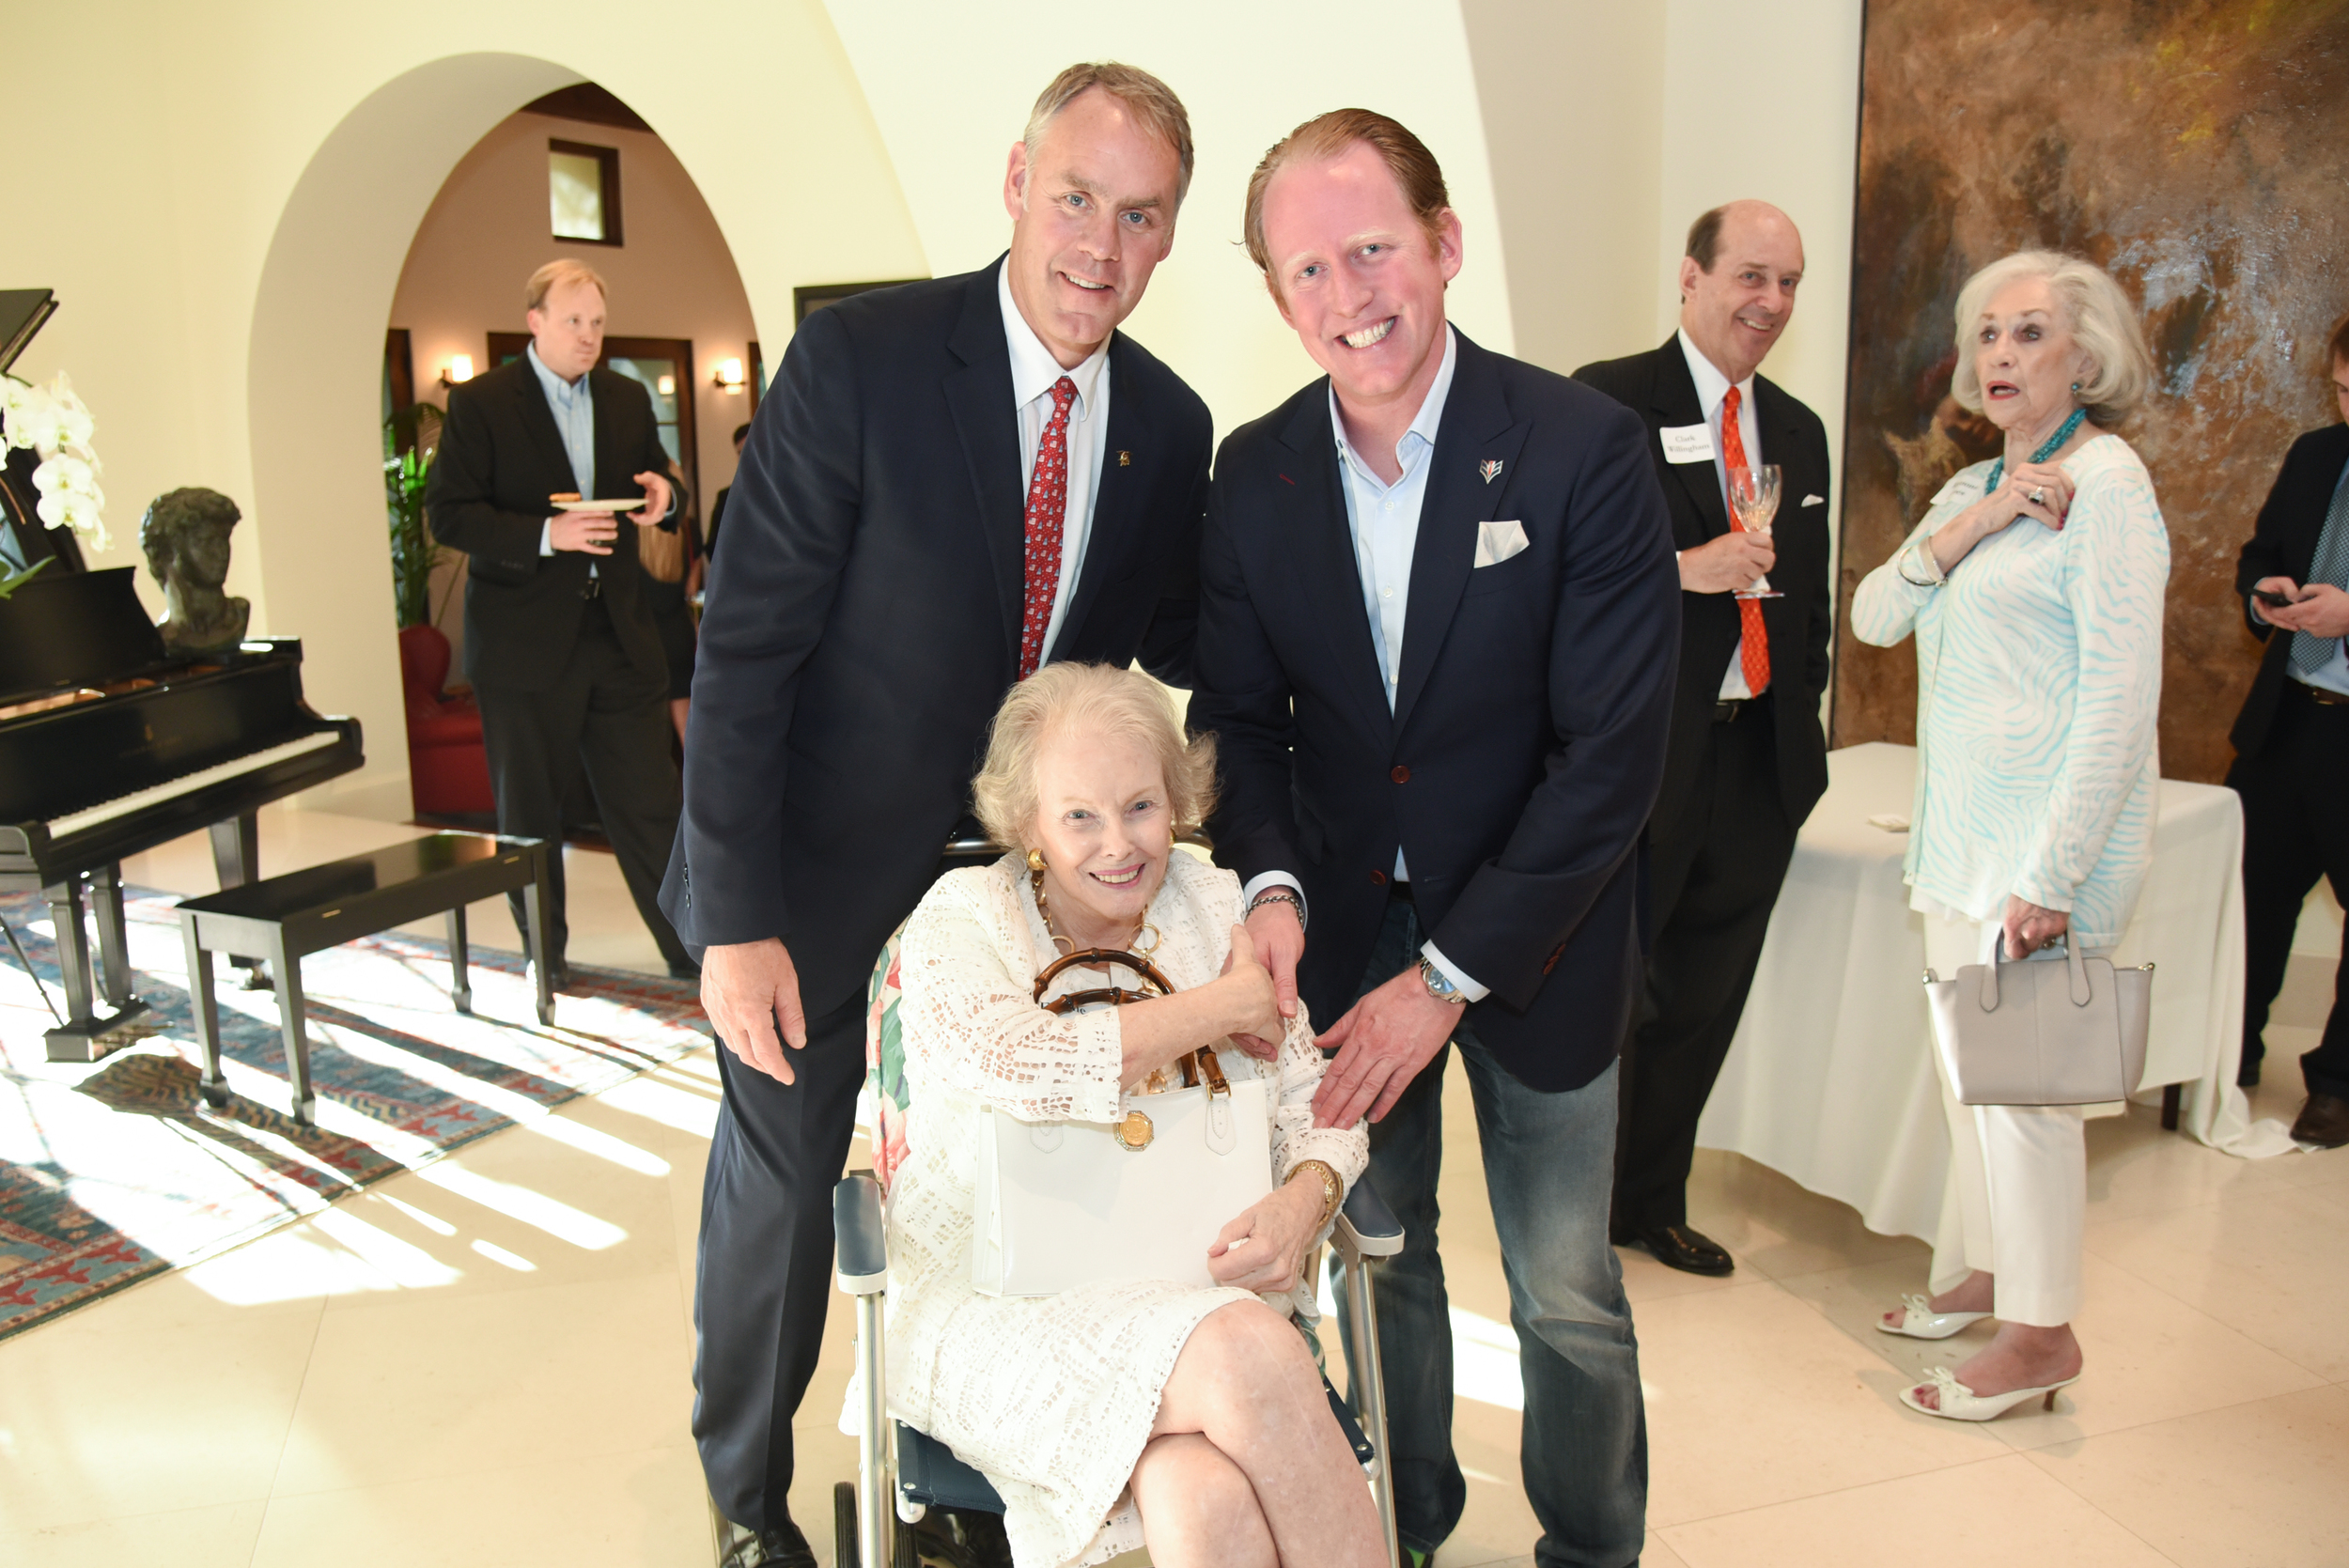 Former Secretary Ryan Zinke and Rob O'Neill with a Dallas native and Zinke supporter at a Dallas reception in 2016.